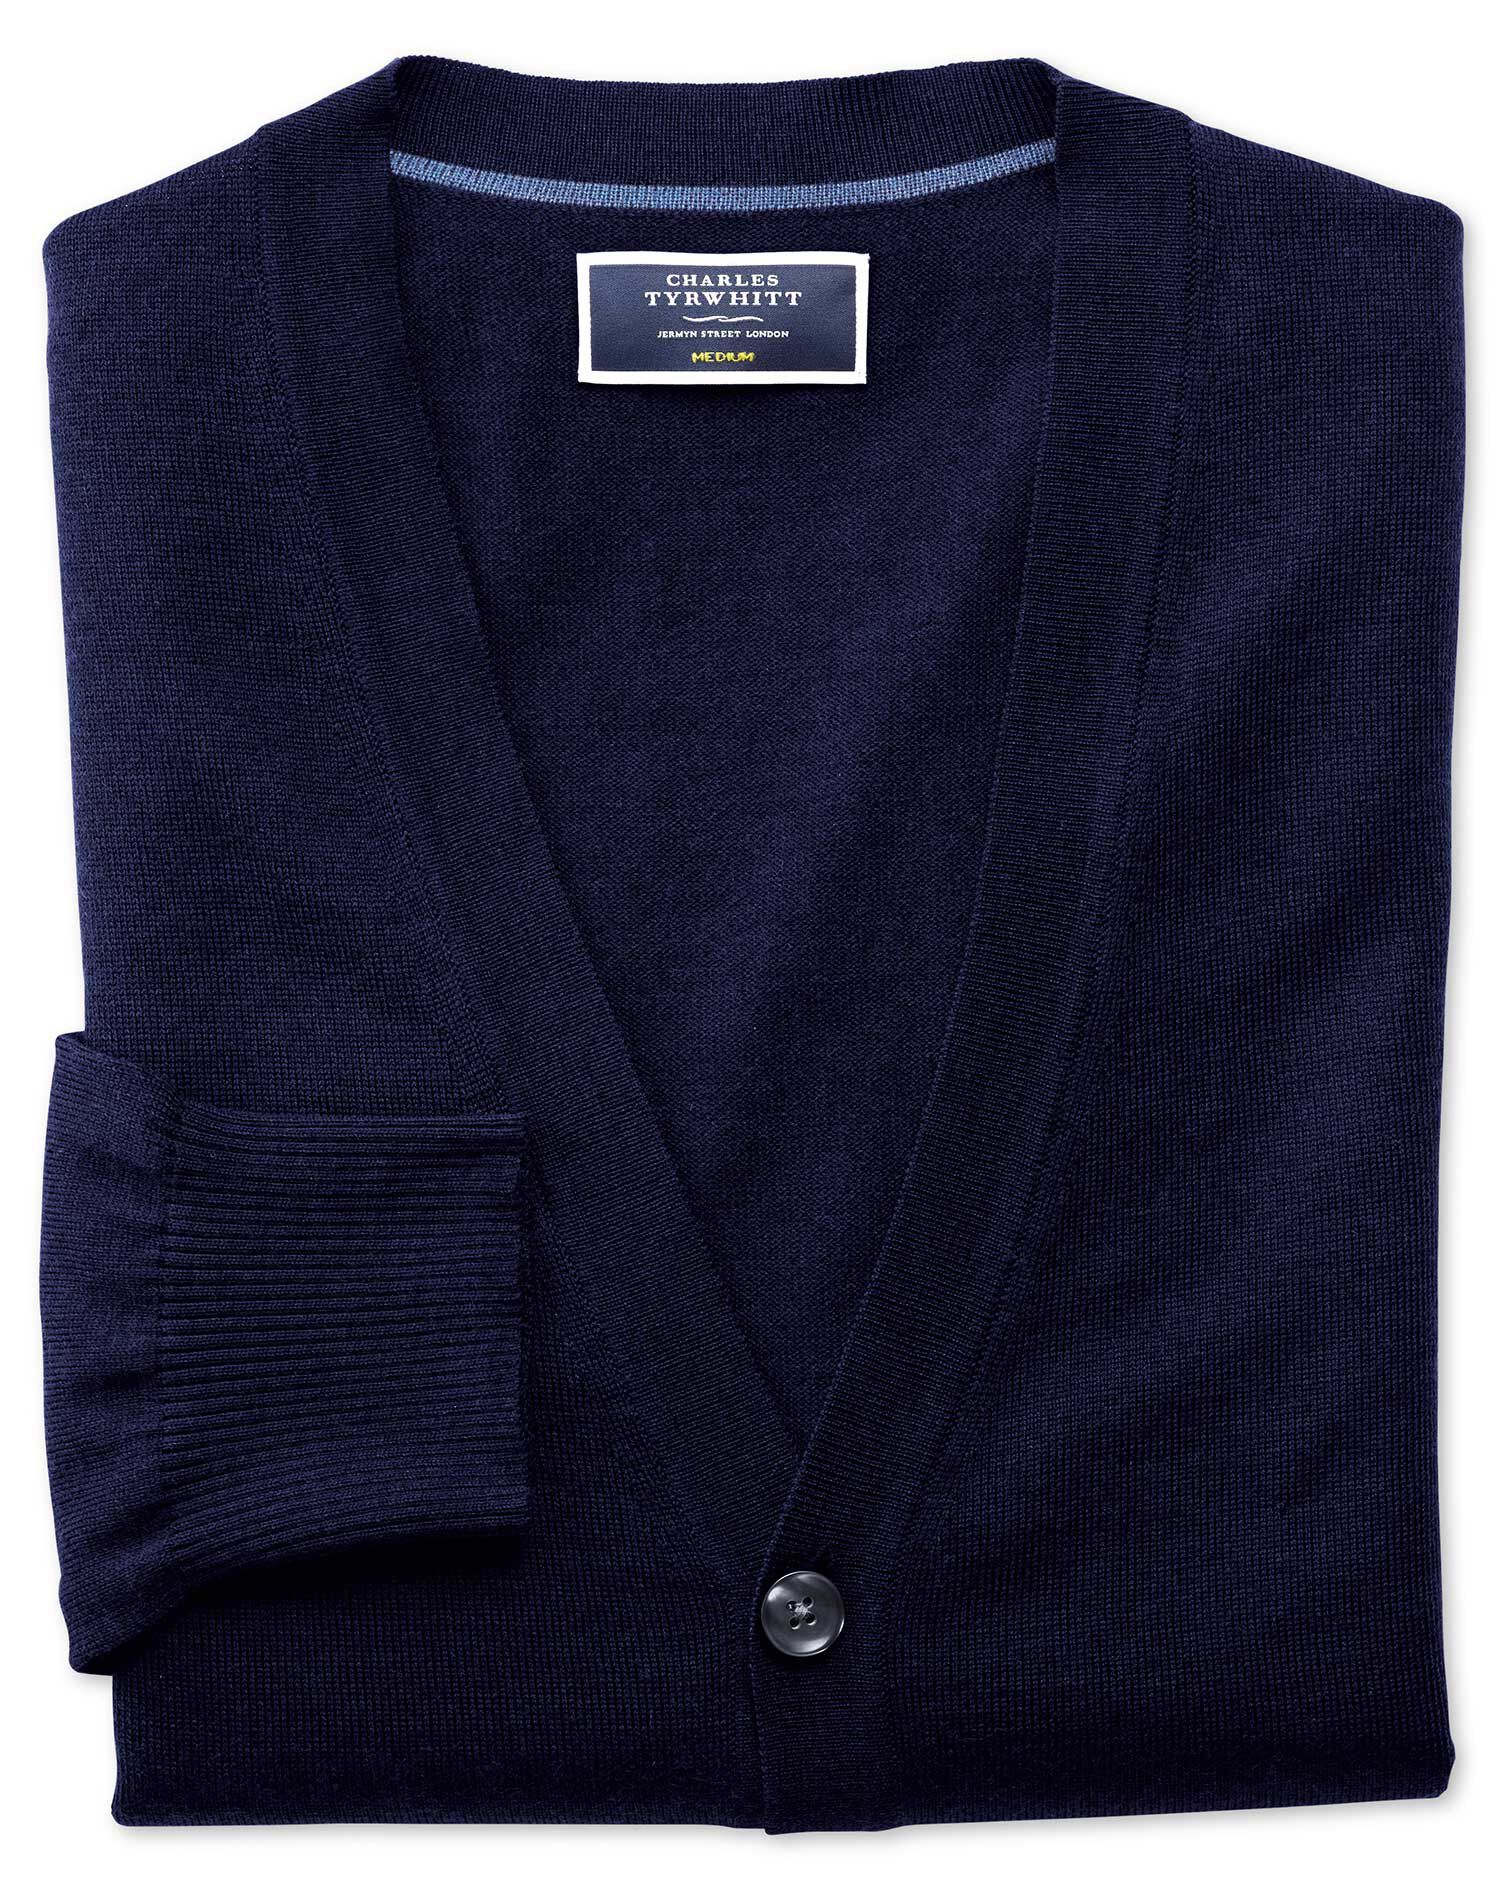 Navy Merino Wool Cardigan Size Large by Charles Tyrwhitt